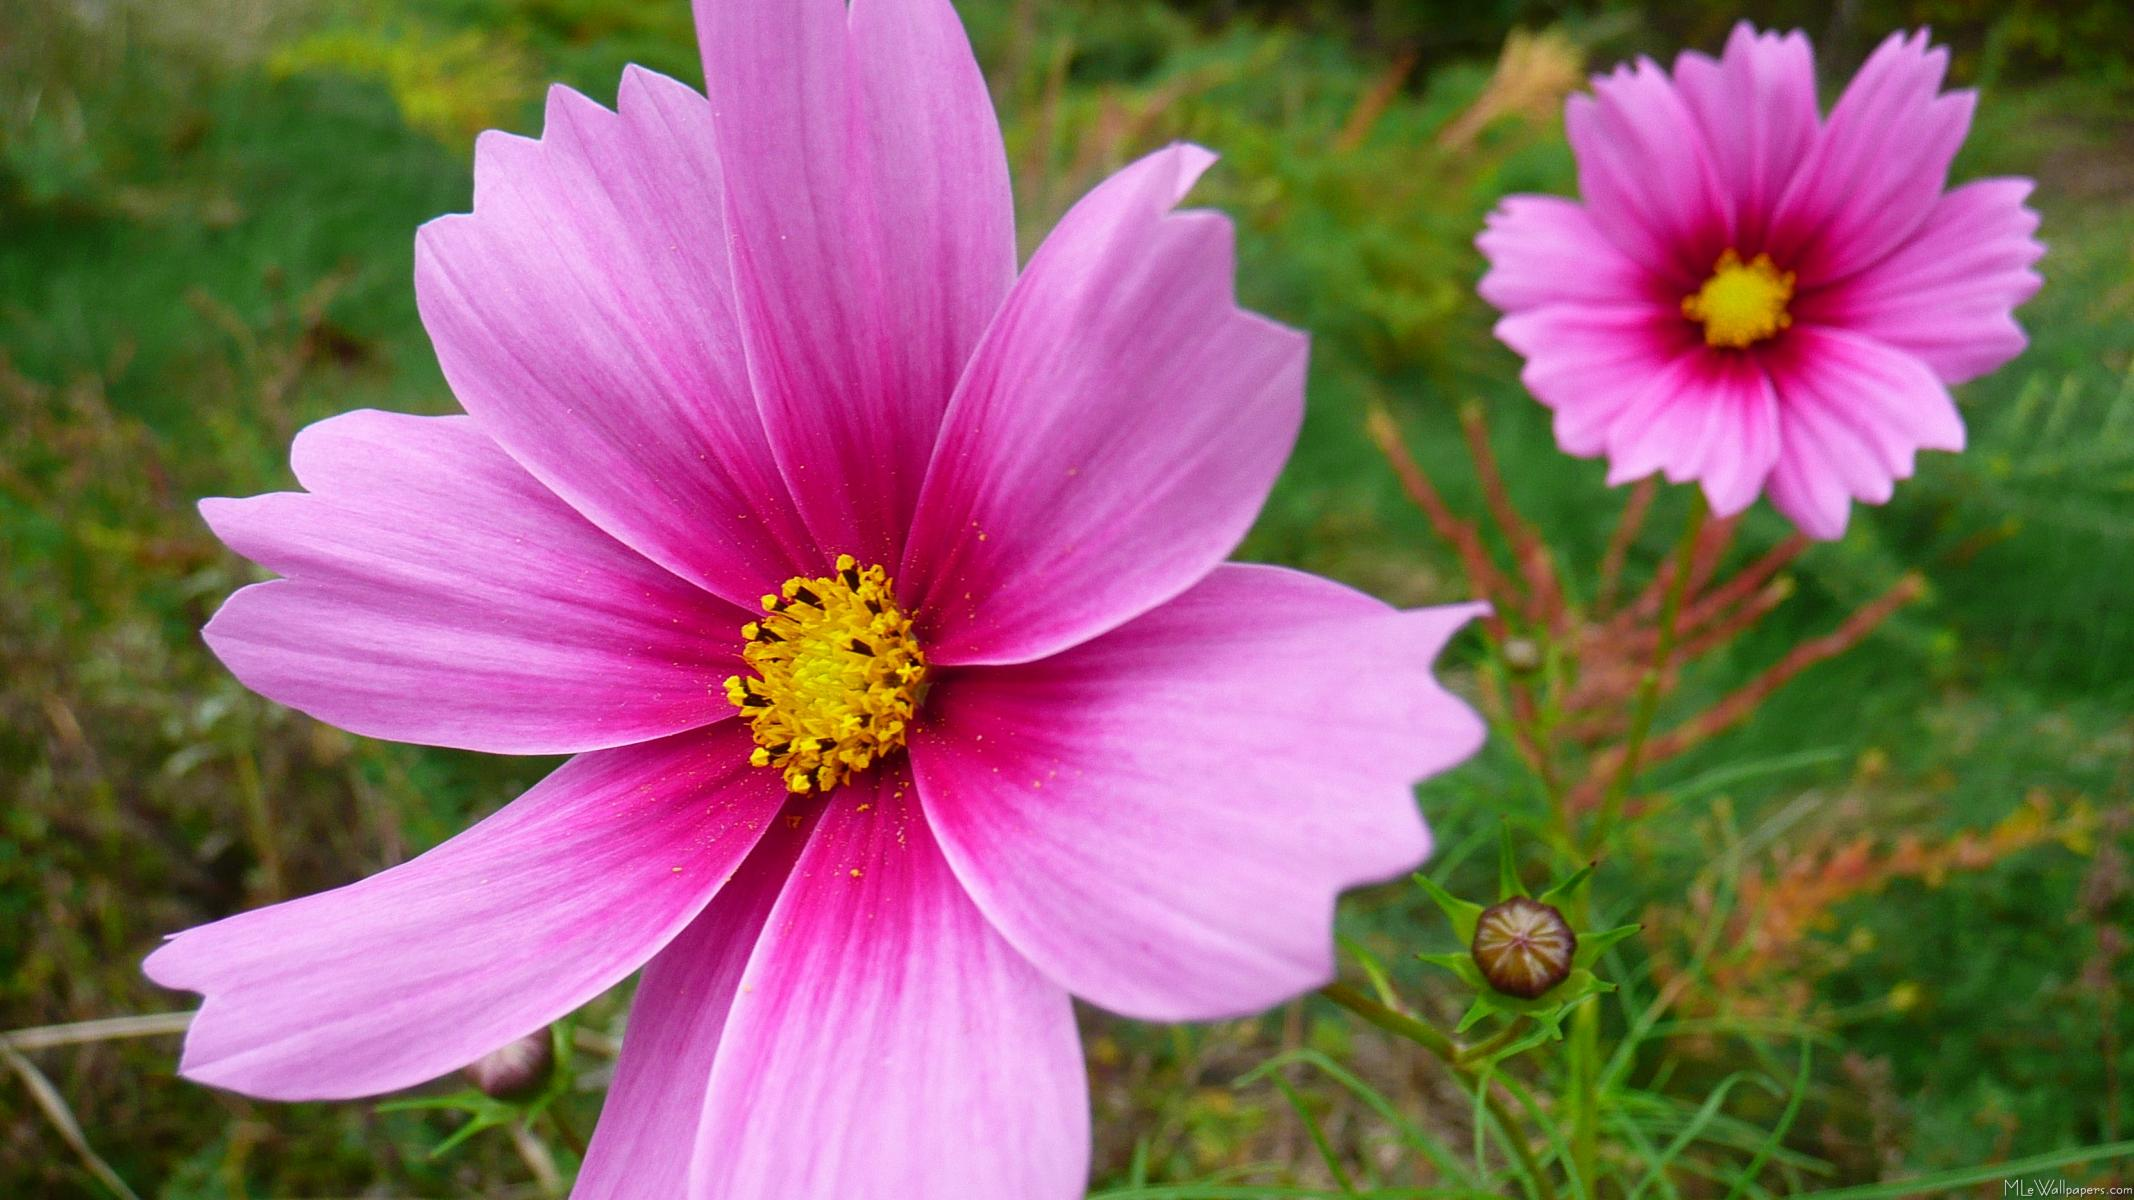 Mlewallpapers pink cosmos flowers heres a nature wallpaper of two pretty pink cosmos from the wildflowers i planted in my back yard last summer pink cosmos flowers mightylinksfo Image collections